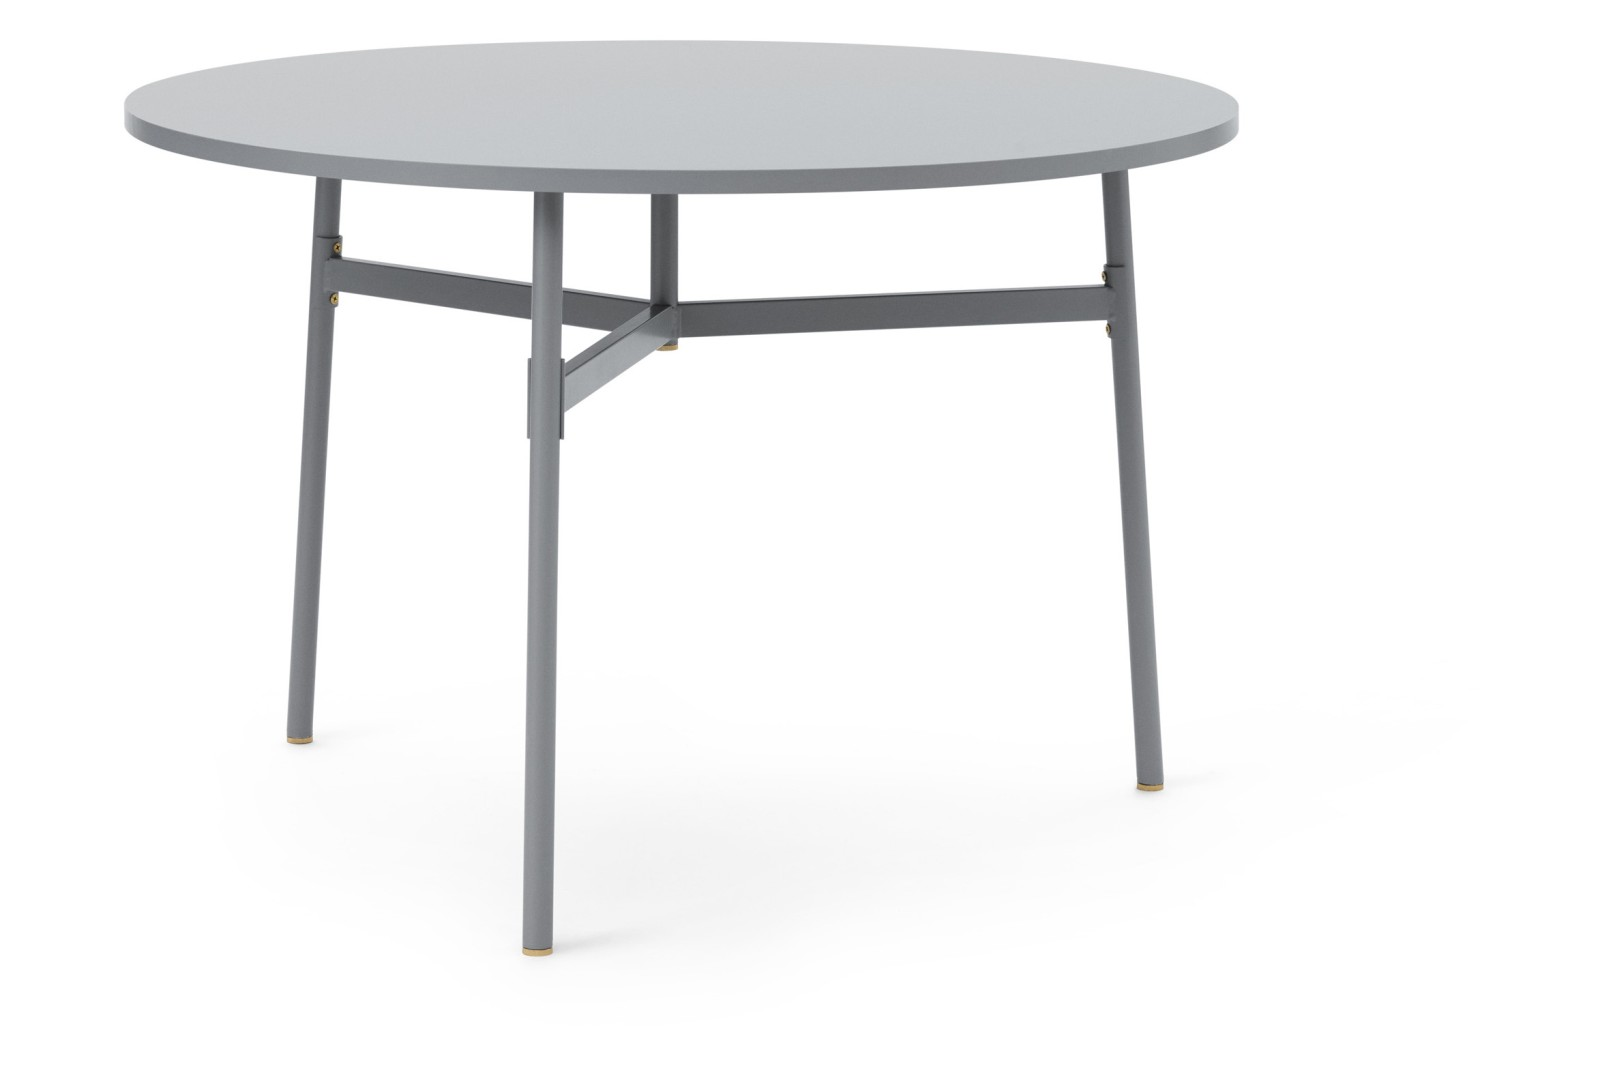 Union Round Dining Table Grey, 110